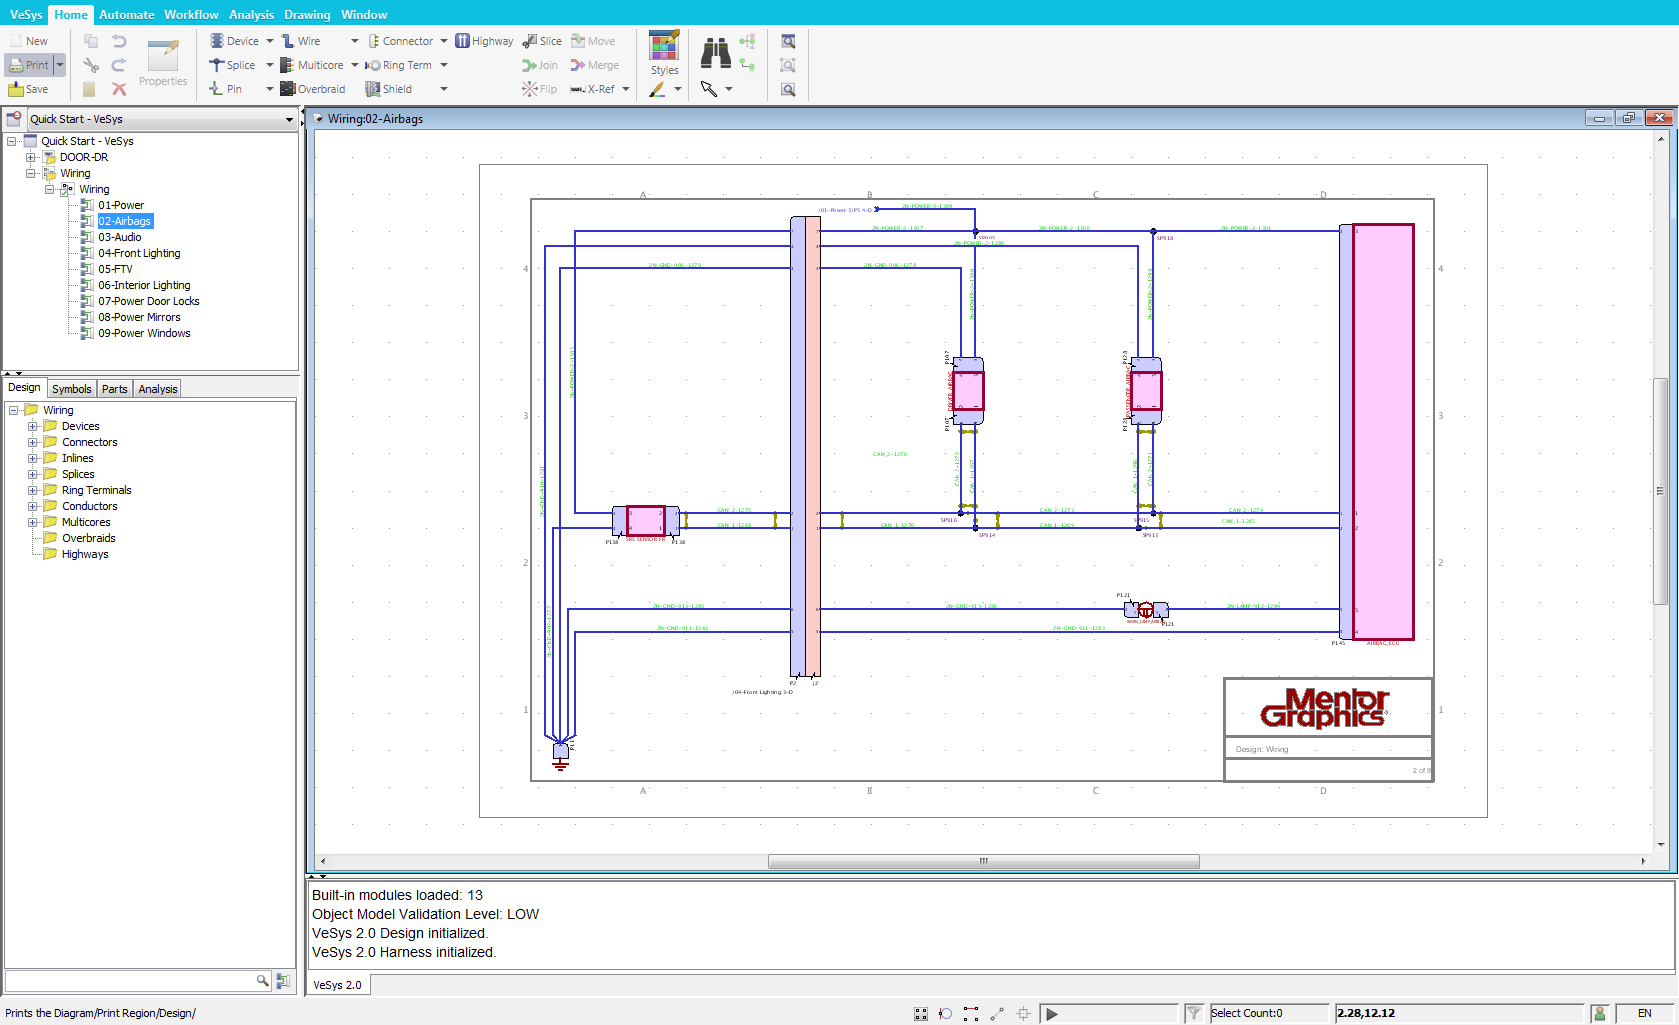 Wiring Diagram Us Capital Building Schematic Diagrams House Tools For A Vesys Design Mentor Graphics